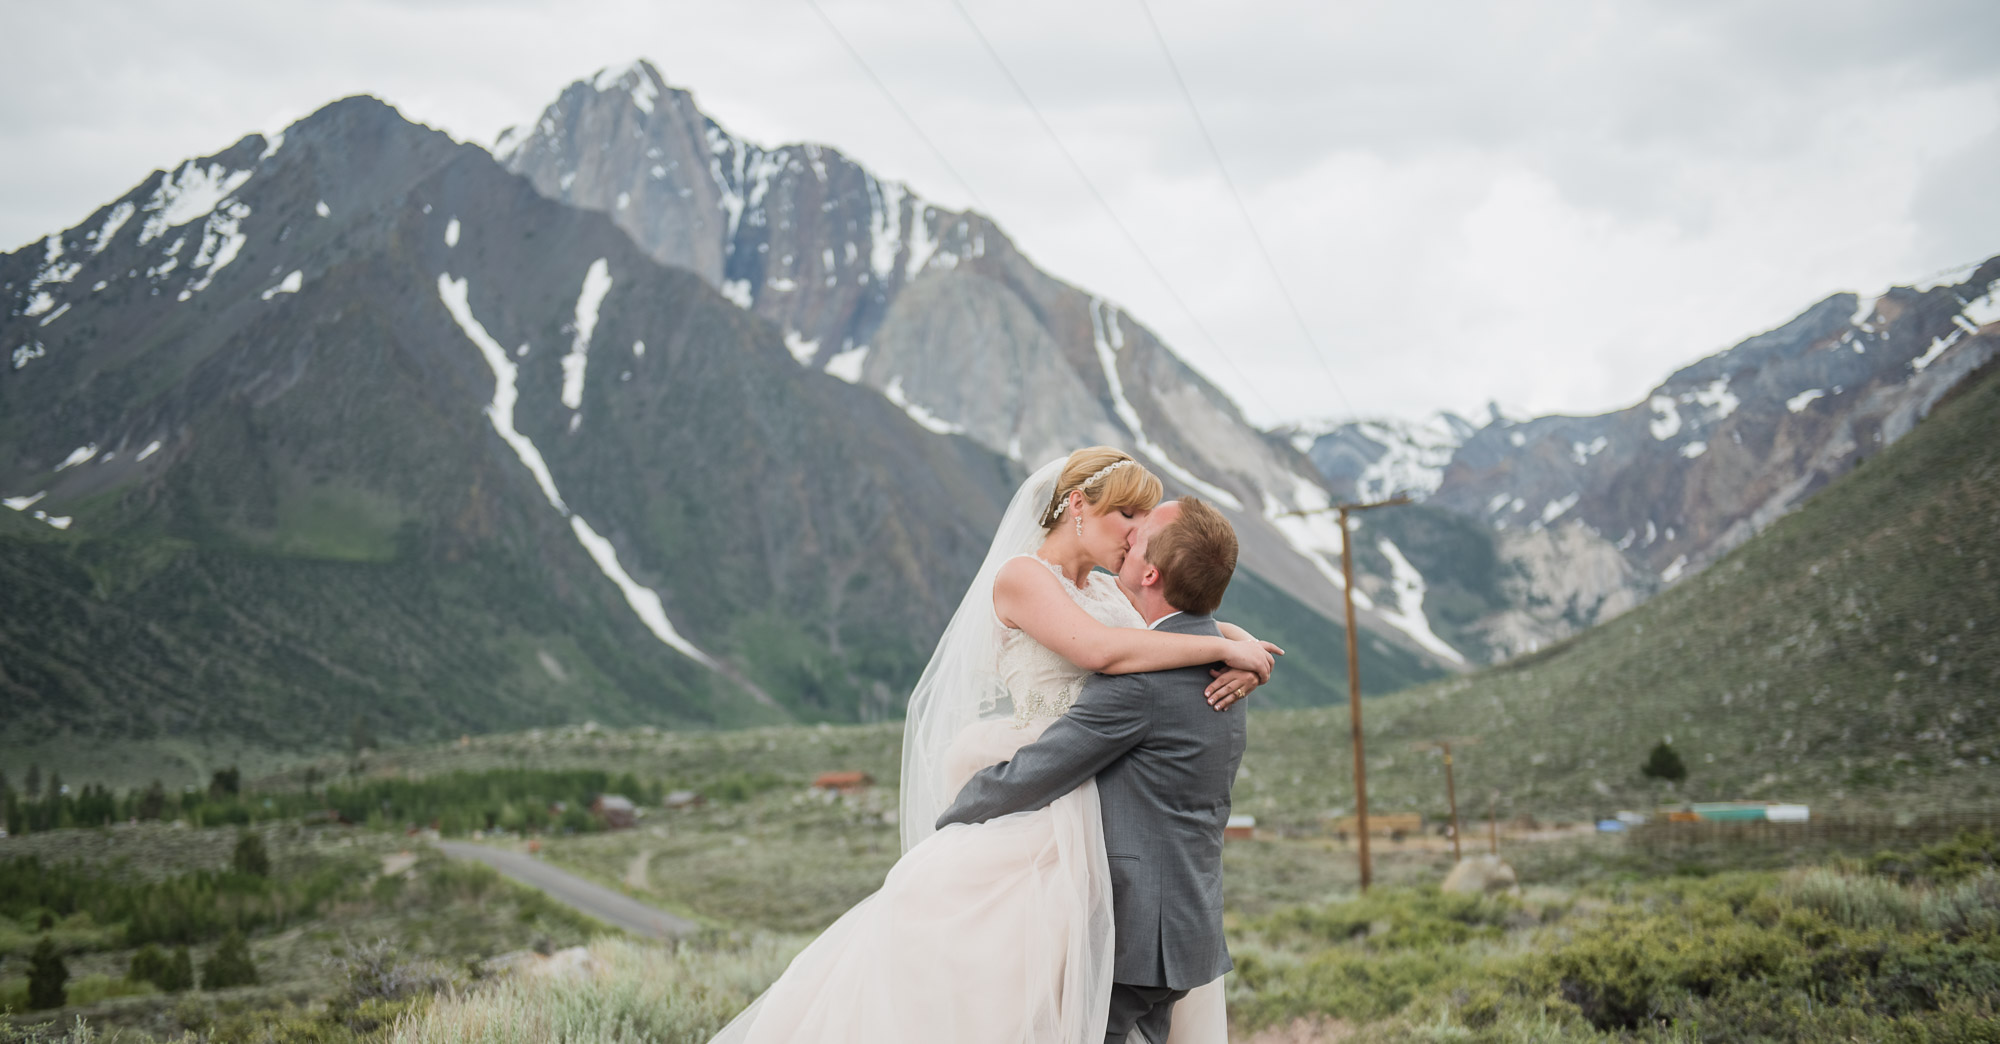 Stephanie & Taylor's Mammoth Lakes Wedding – Convict Lake Wedding featured slider image